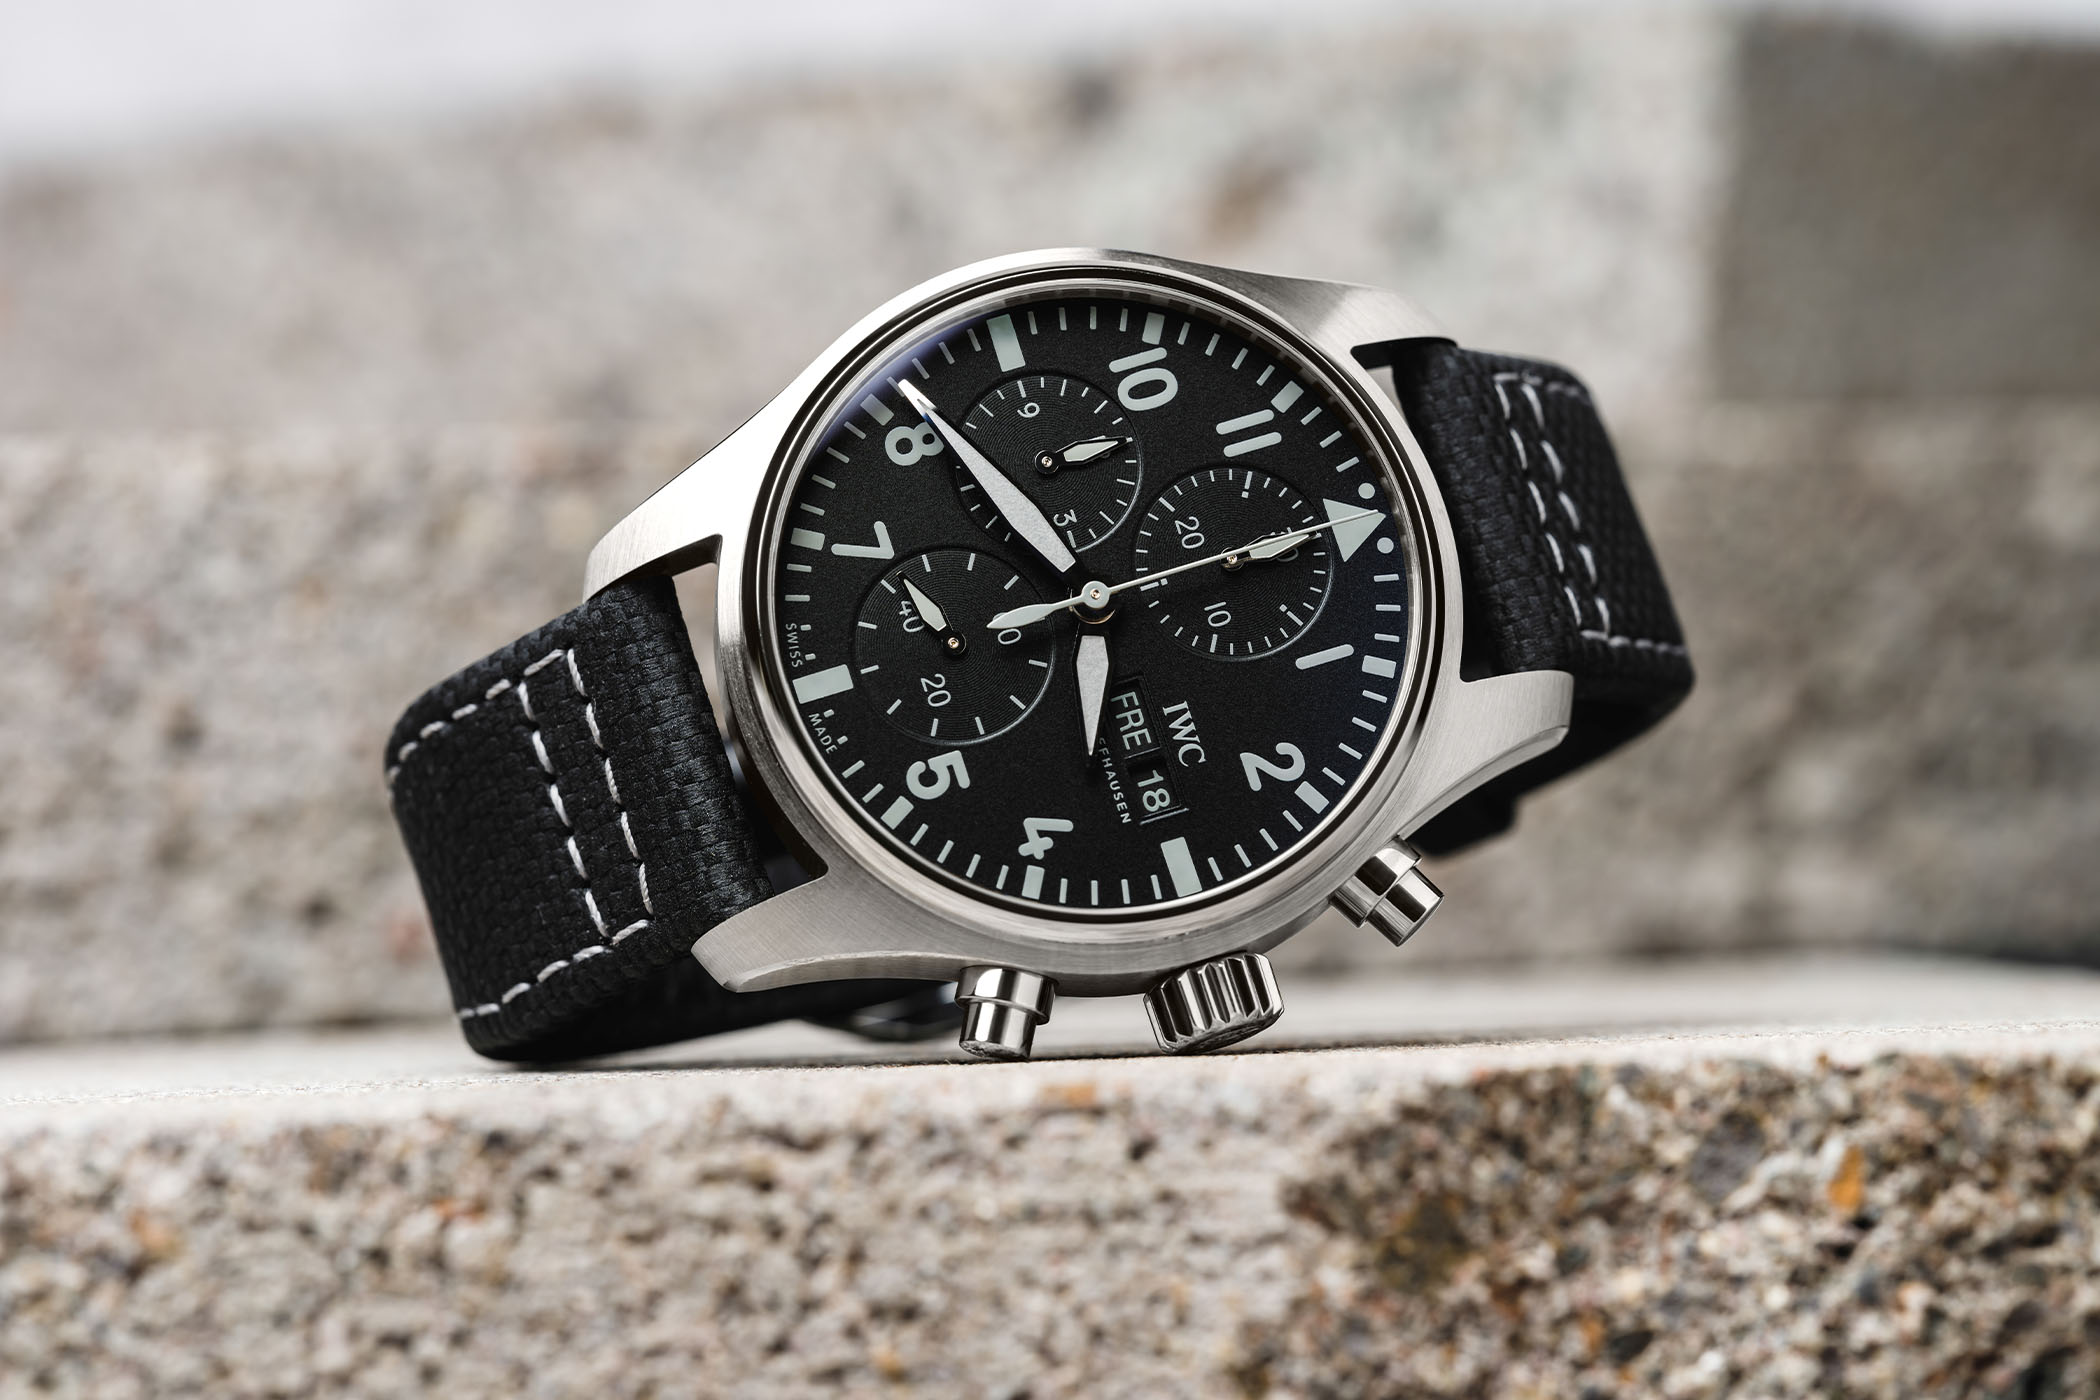 IWC Pilot's Watch Chronograph Edition C.03 x Collective IW388105